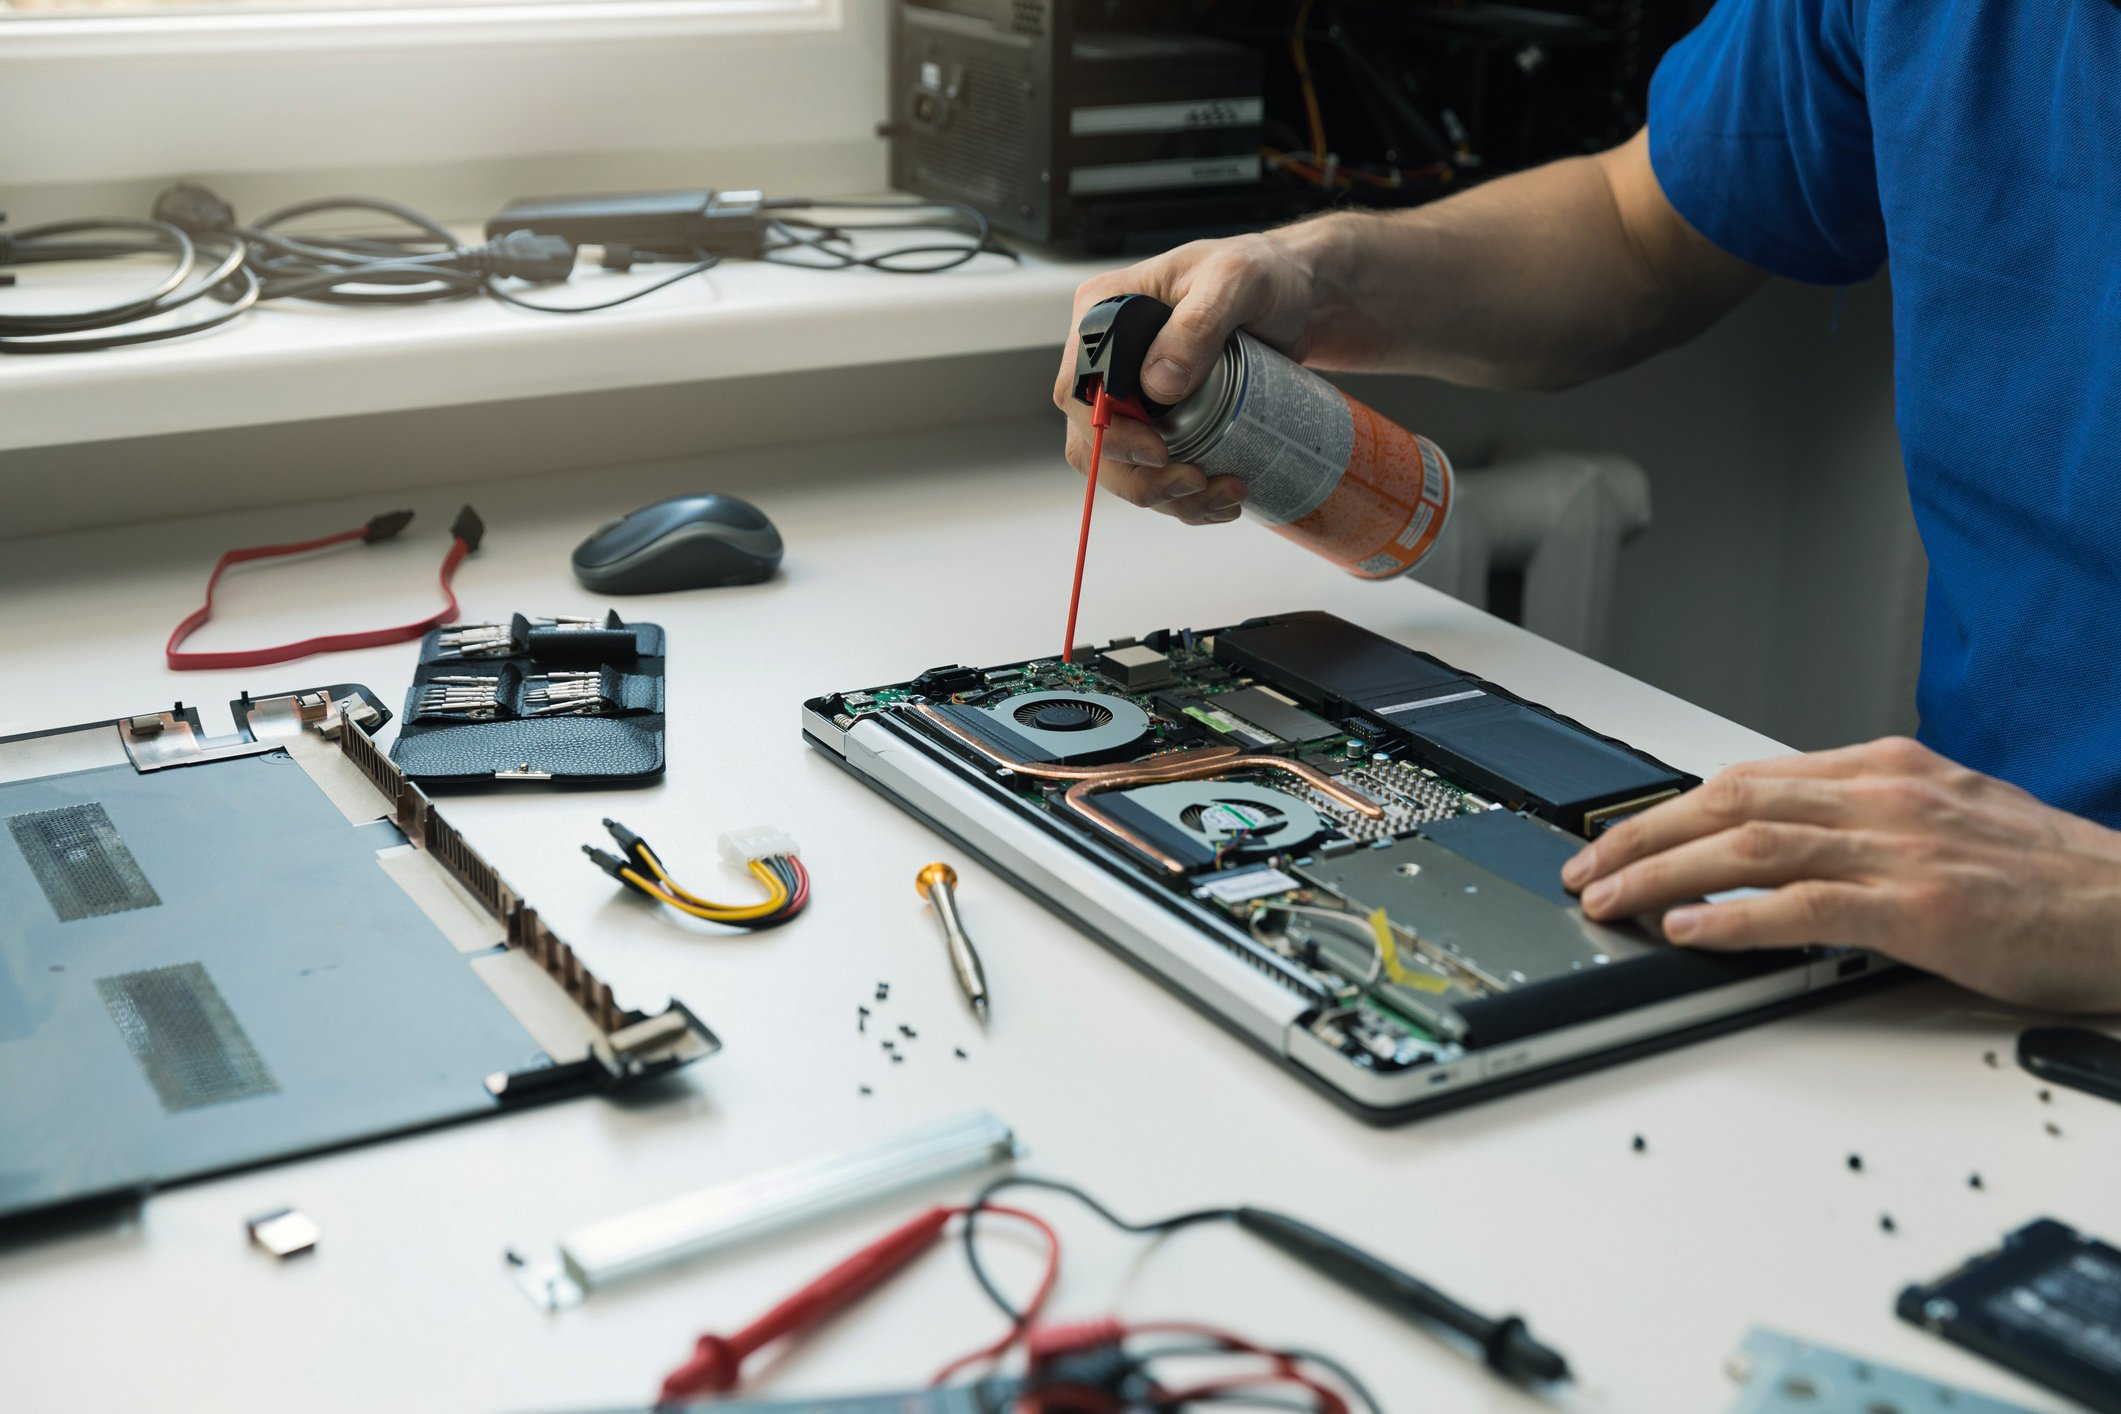 Using compressed air is a good way to get rid of the dust collected in your laptop's parts. (iStock Photo)